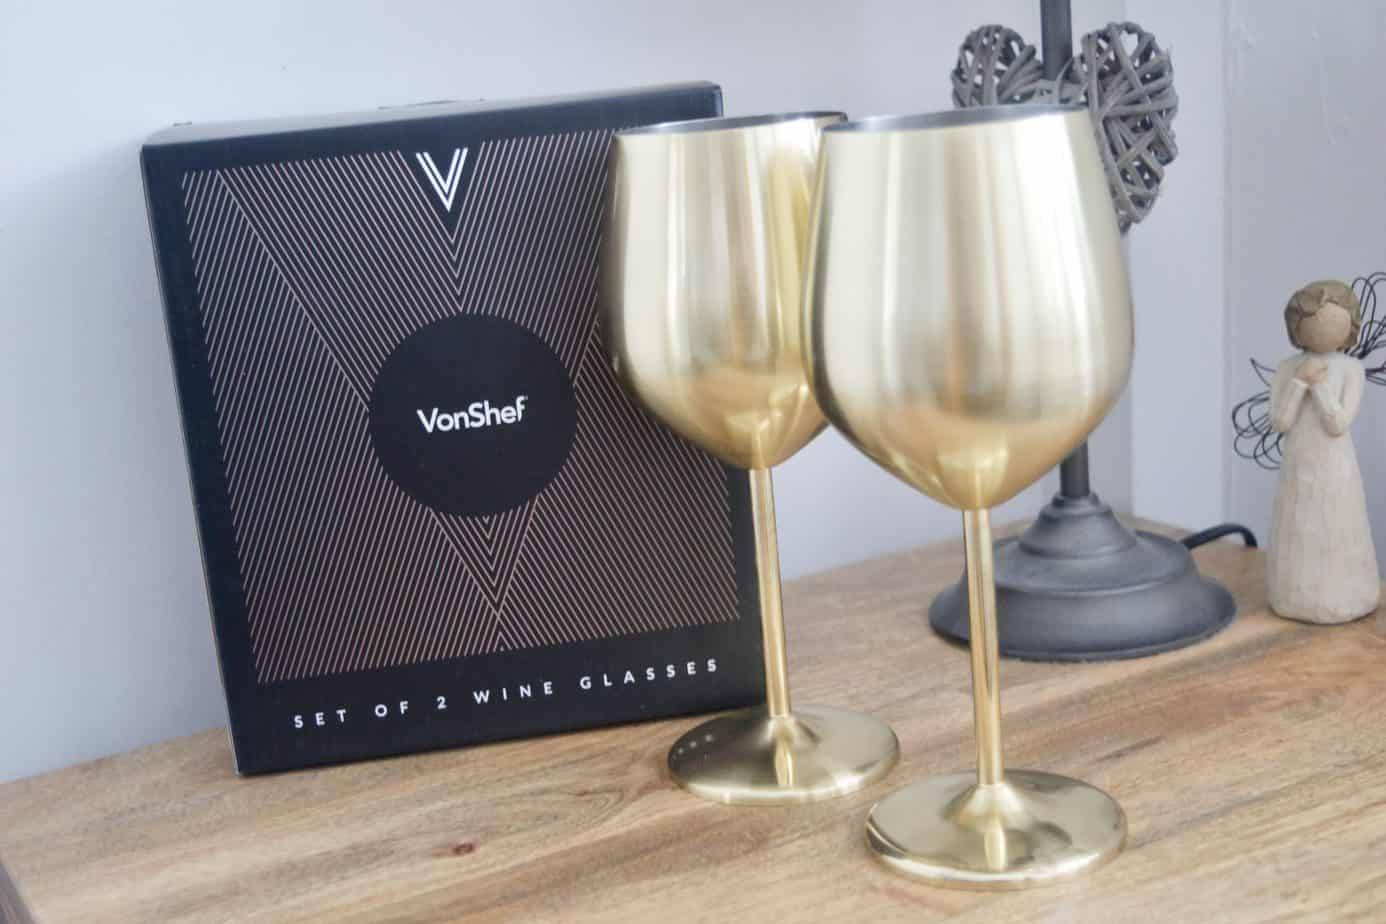 VonShef Gold Wine Glasses